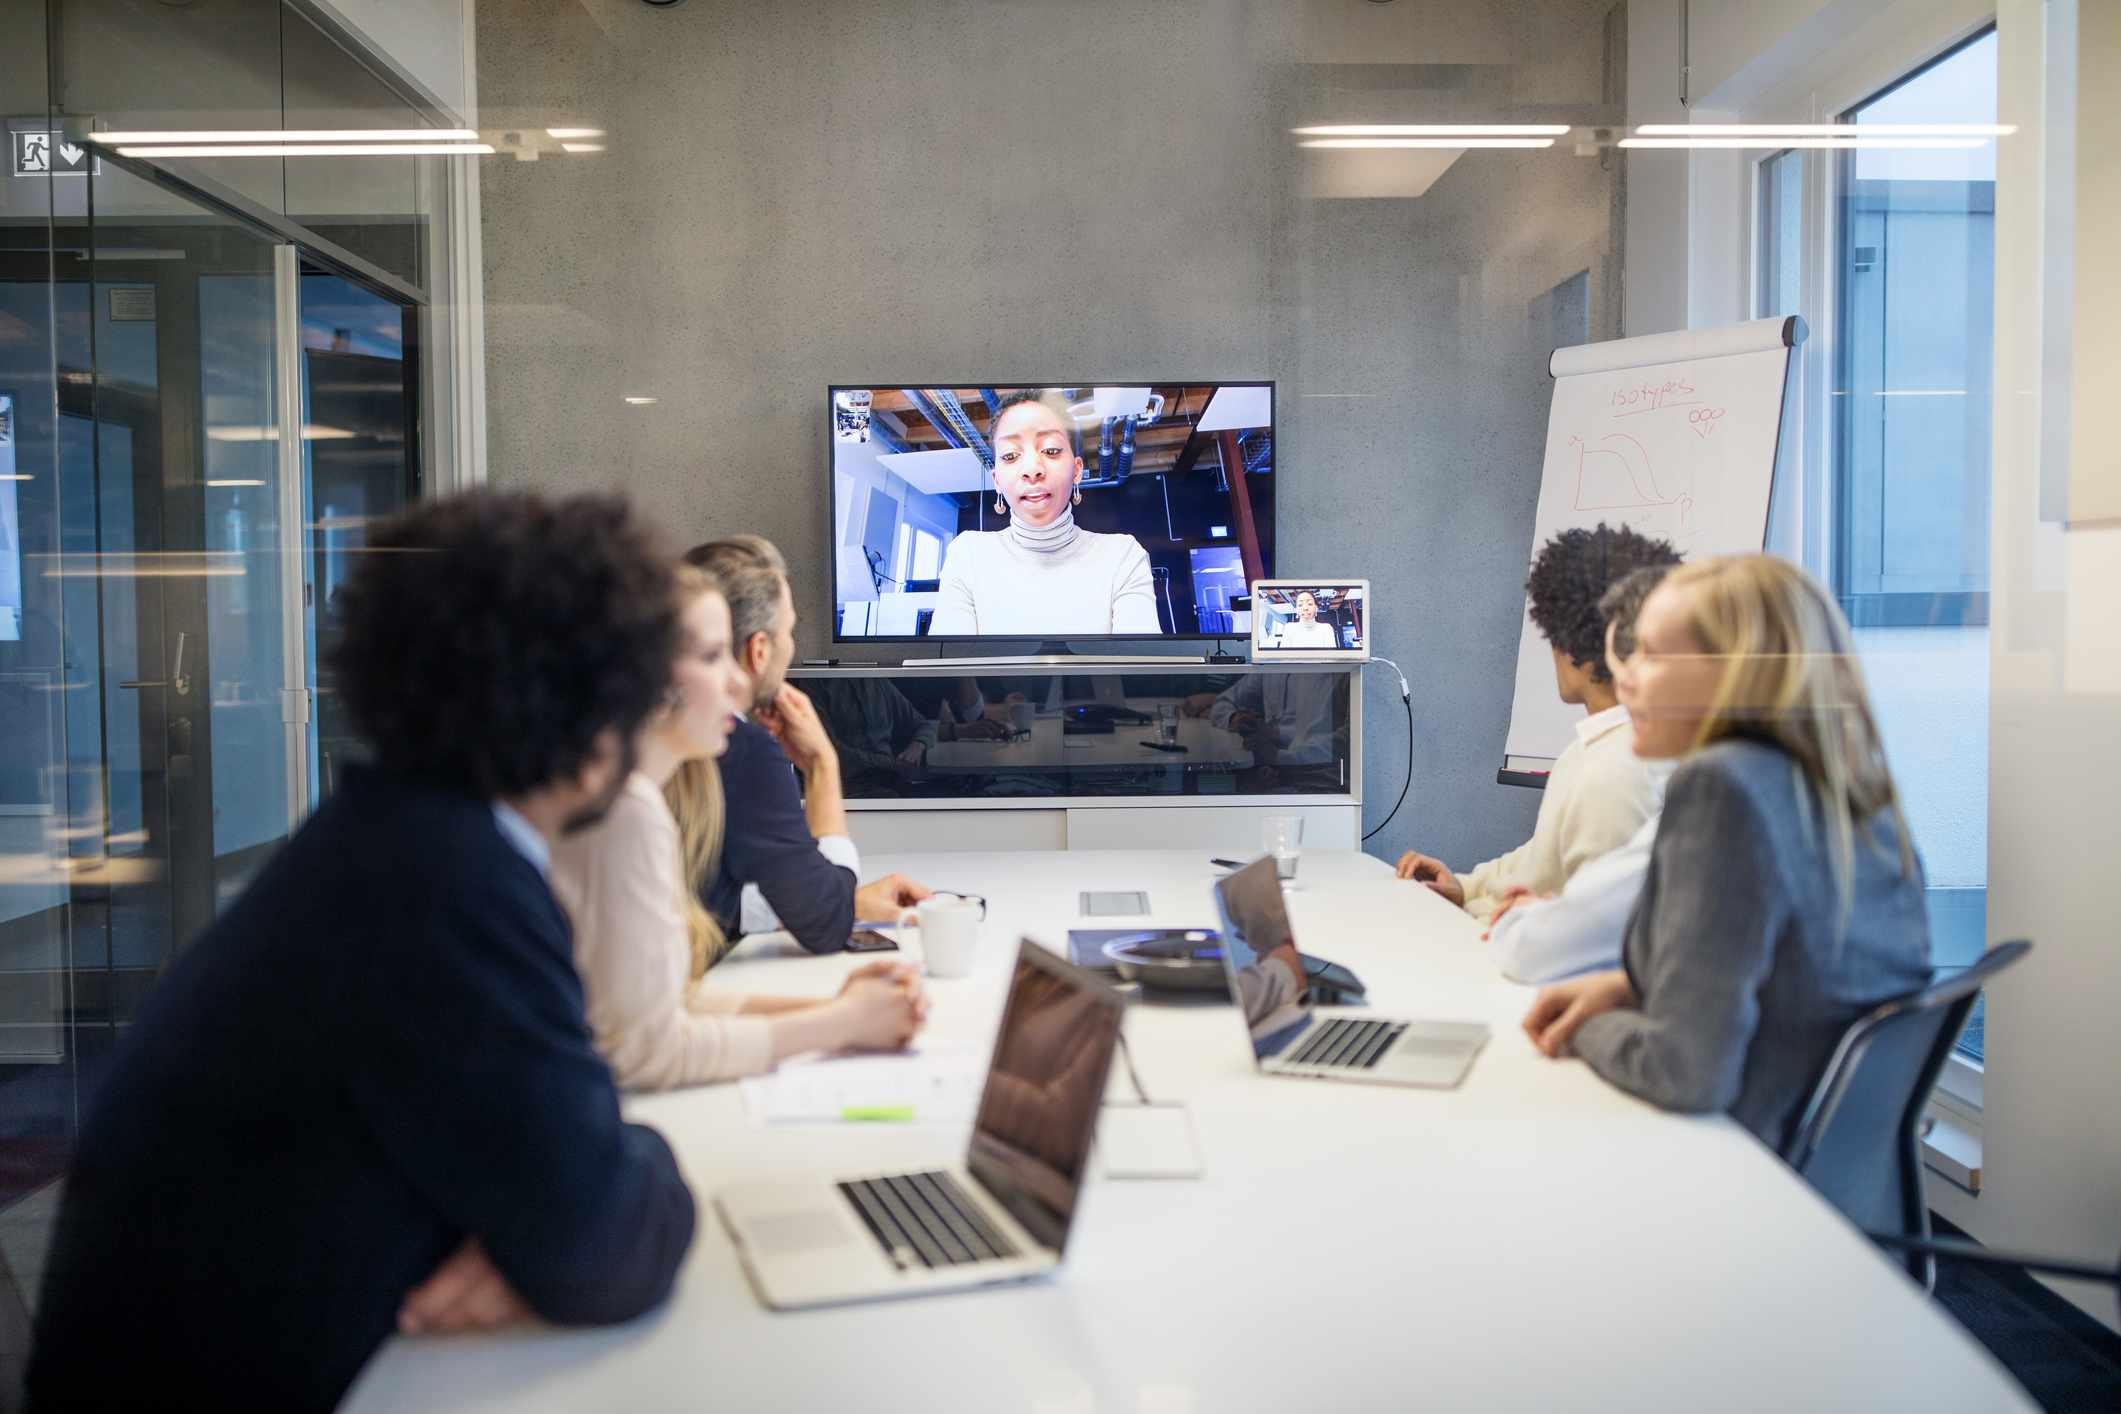 A conference room with a video conference call on the wall monitor